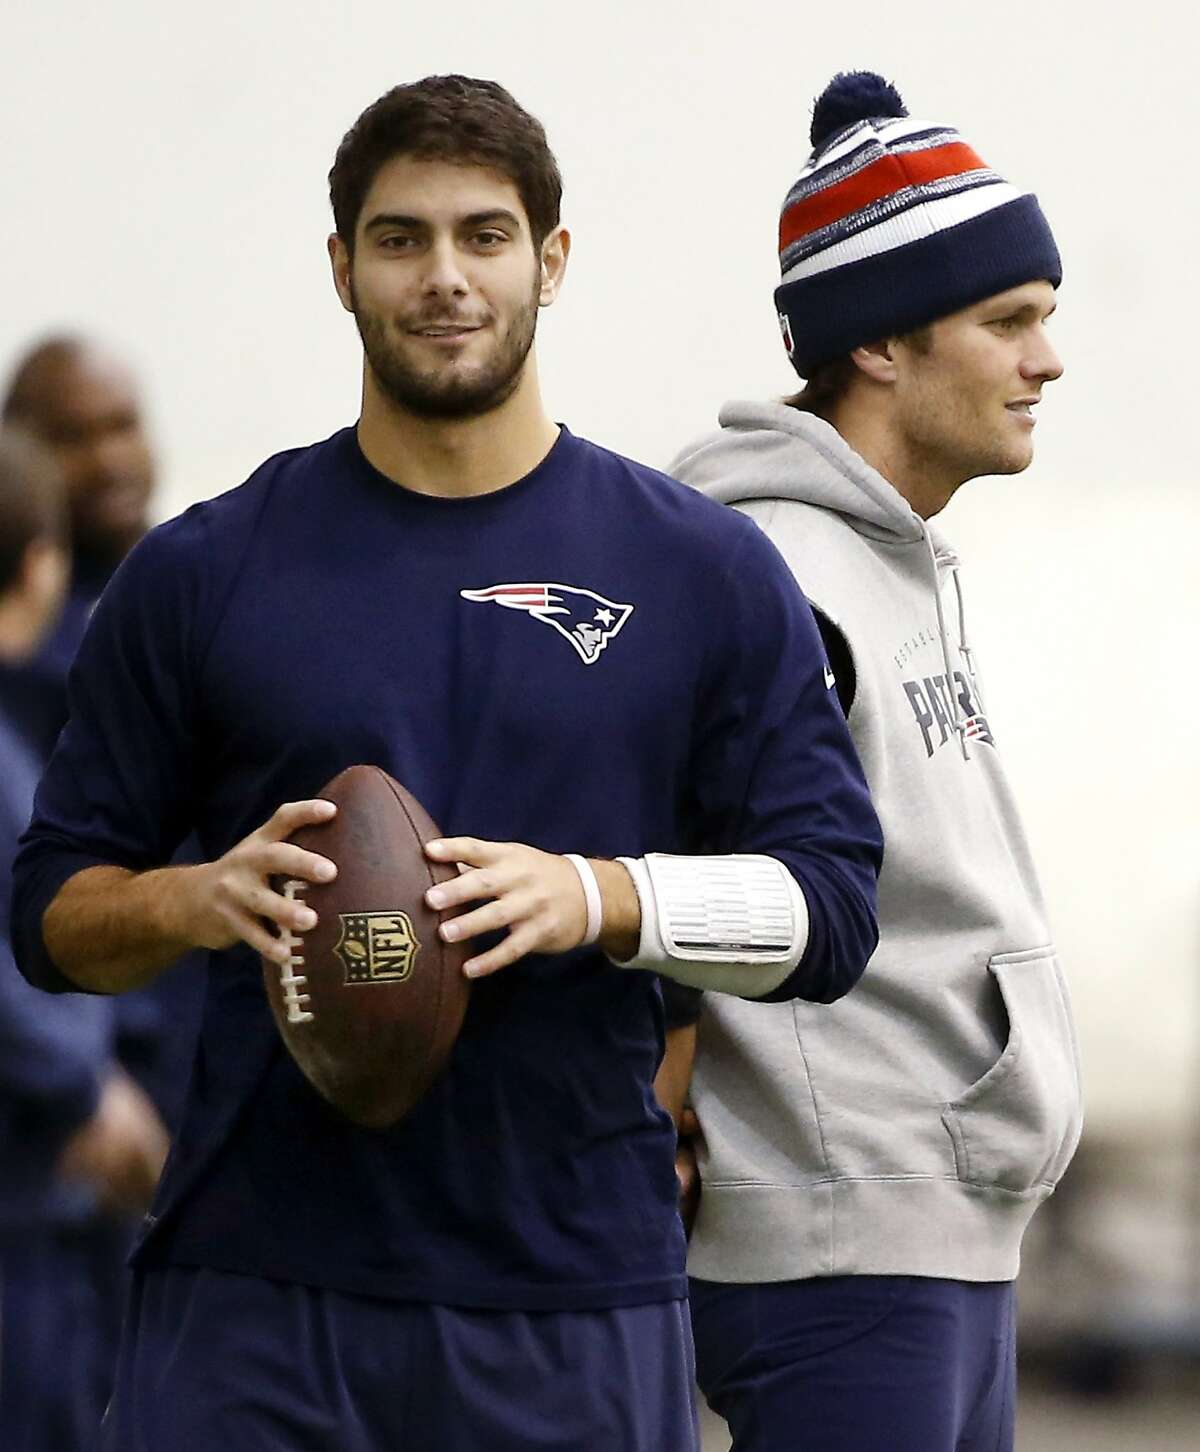 FILE- In this Feb. 1, 2015, file photo, New England Patriots backup quarterback Jimmy Garoppolo, left, holds a football as starting quarterback Tom Brady, right, stands by during a walkthrough at the NFL football team's facility in Foxborough, Mass.